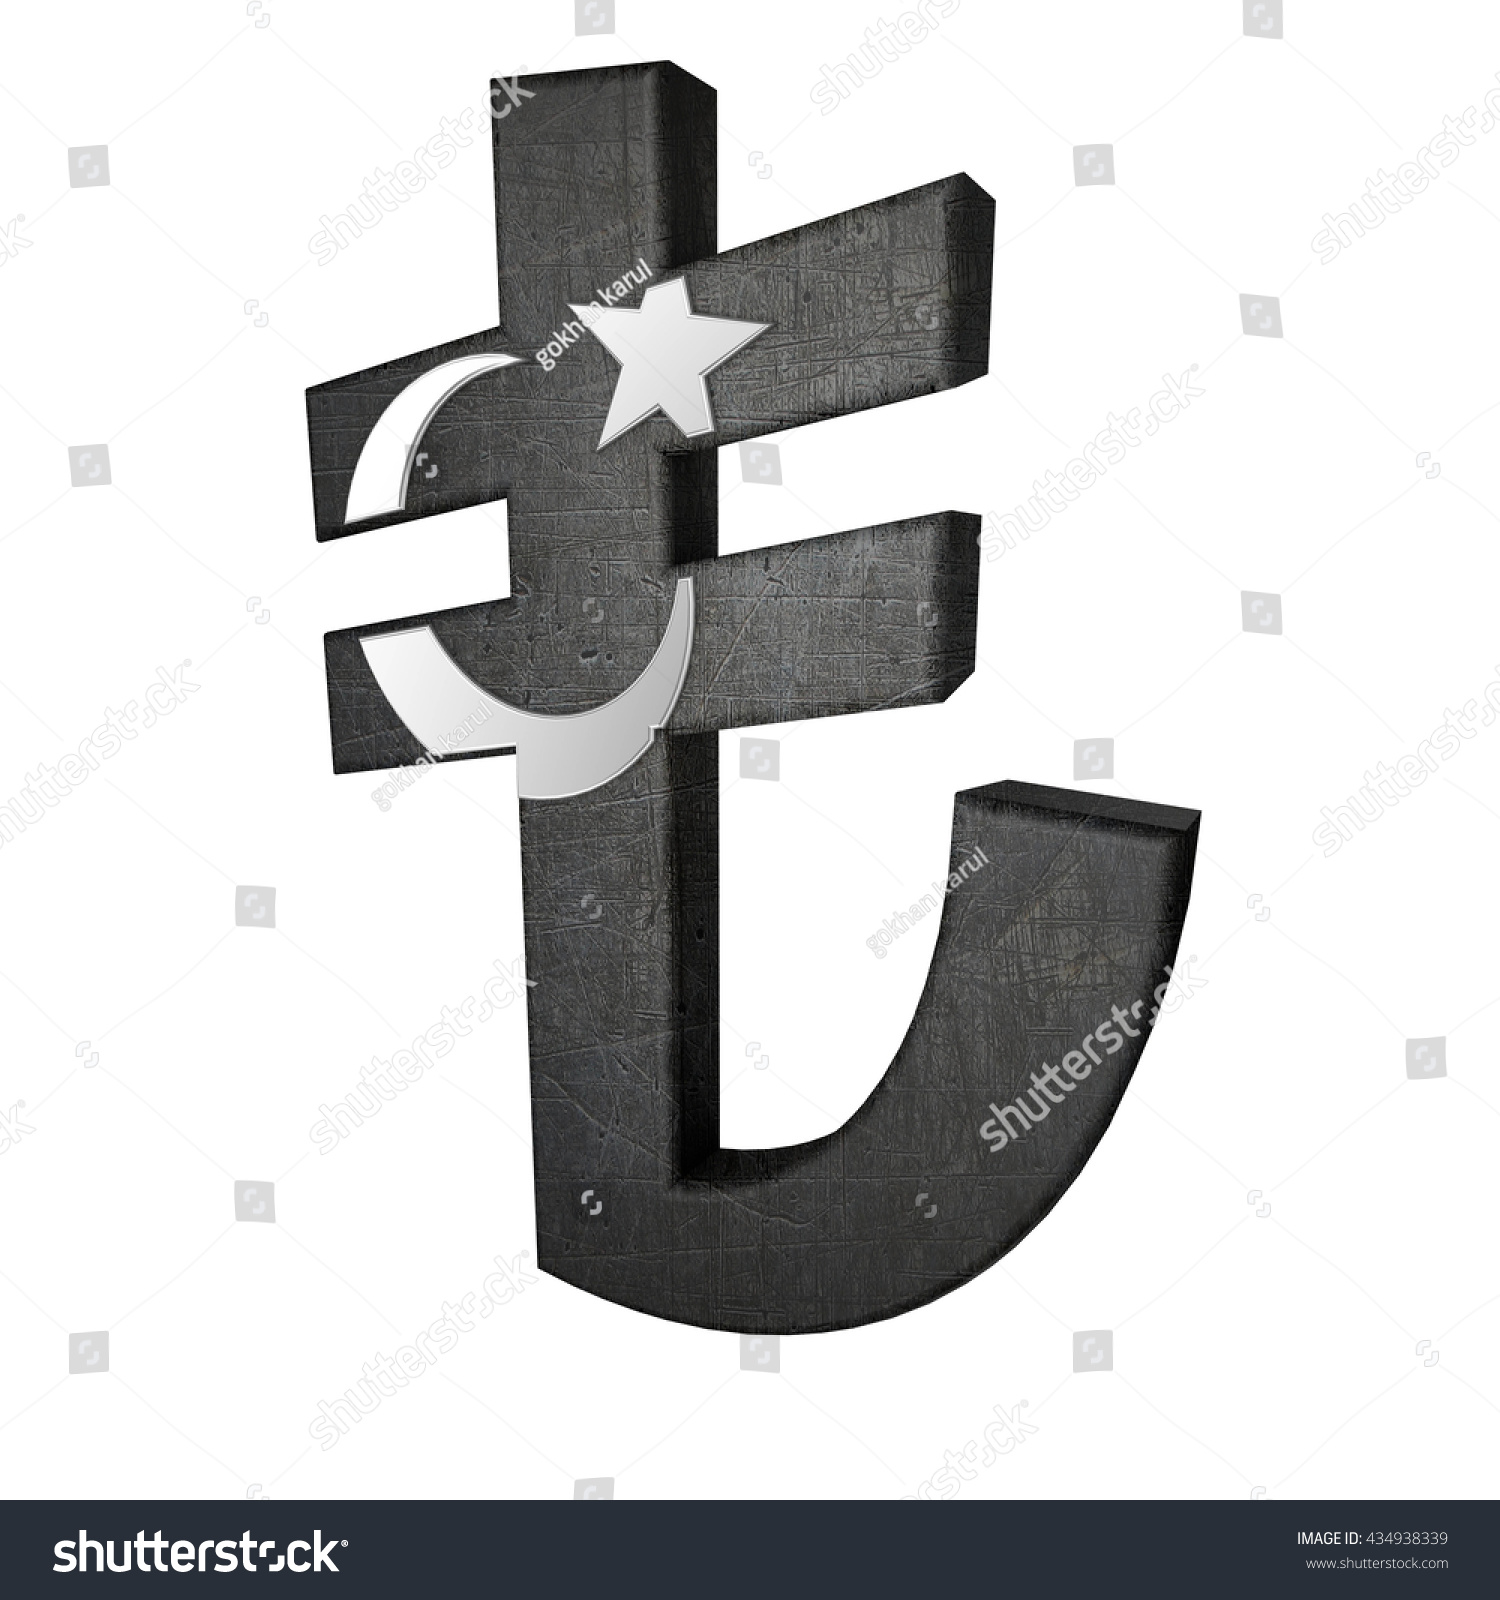 Currency symbol aed image collections symbols and meanings turkish currency symbol image collections symbol and sign ideas turkish lira currency symbol 3d tl stock biocorpaavc Images